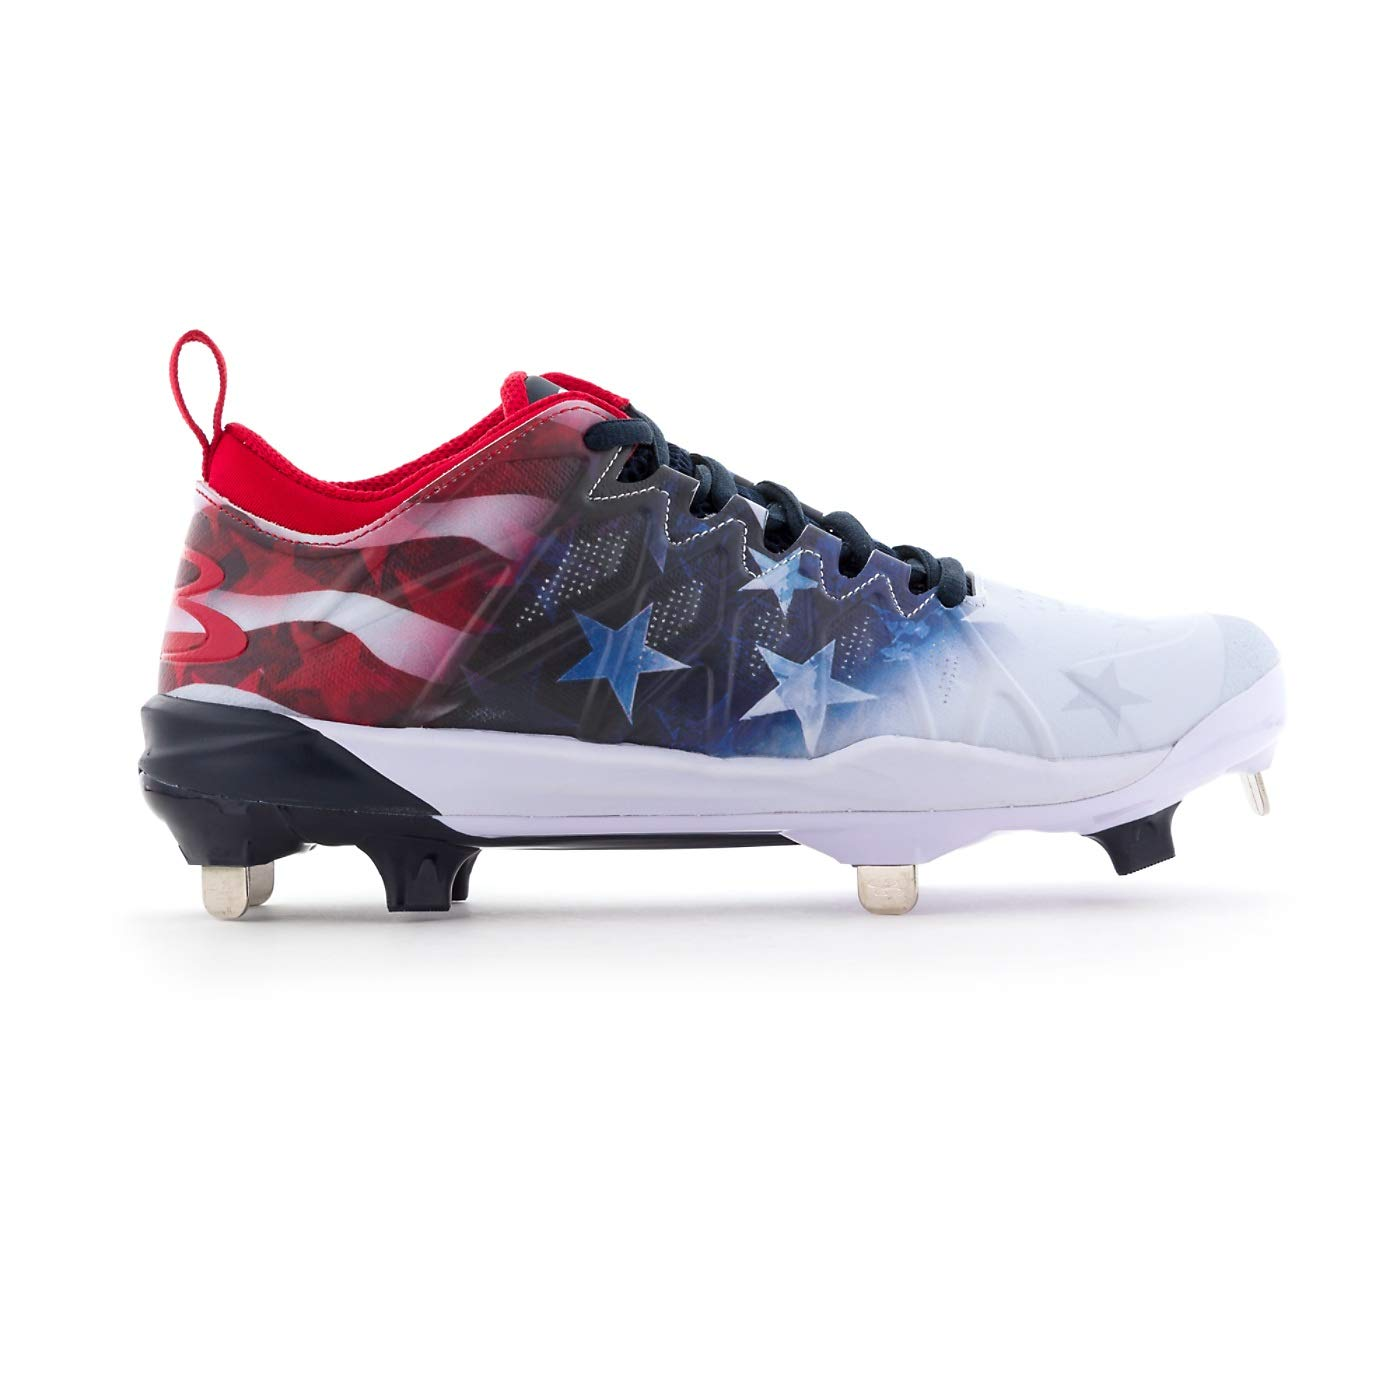 Boombah Women's Squadron Flag Metal Cleats Royal Blue/Red/White - Size 10 by Boombah